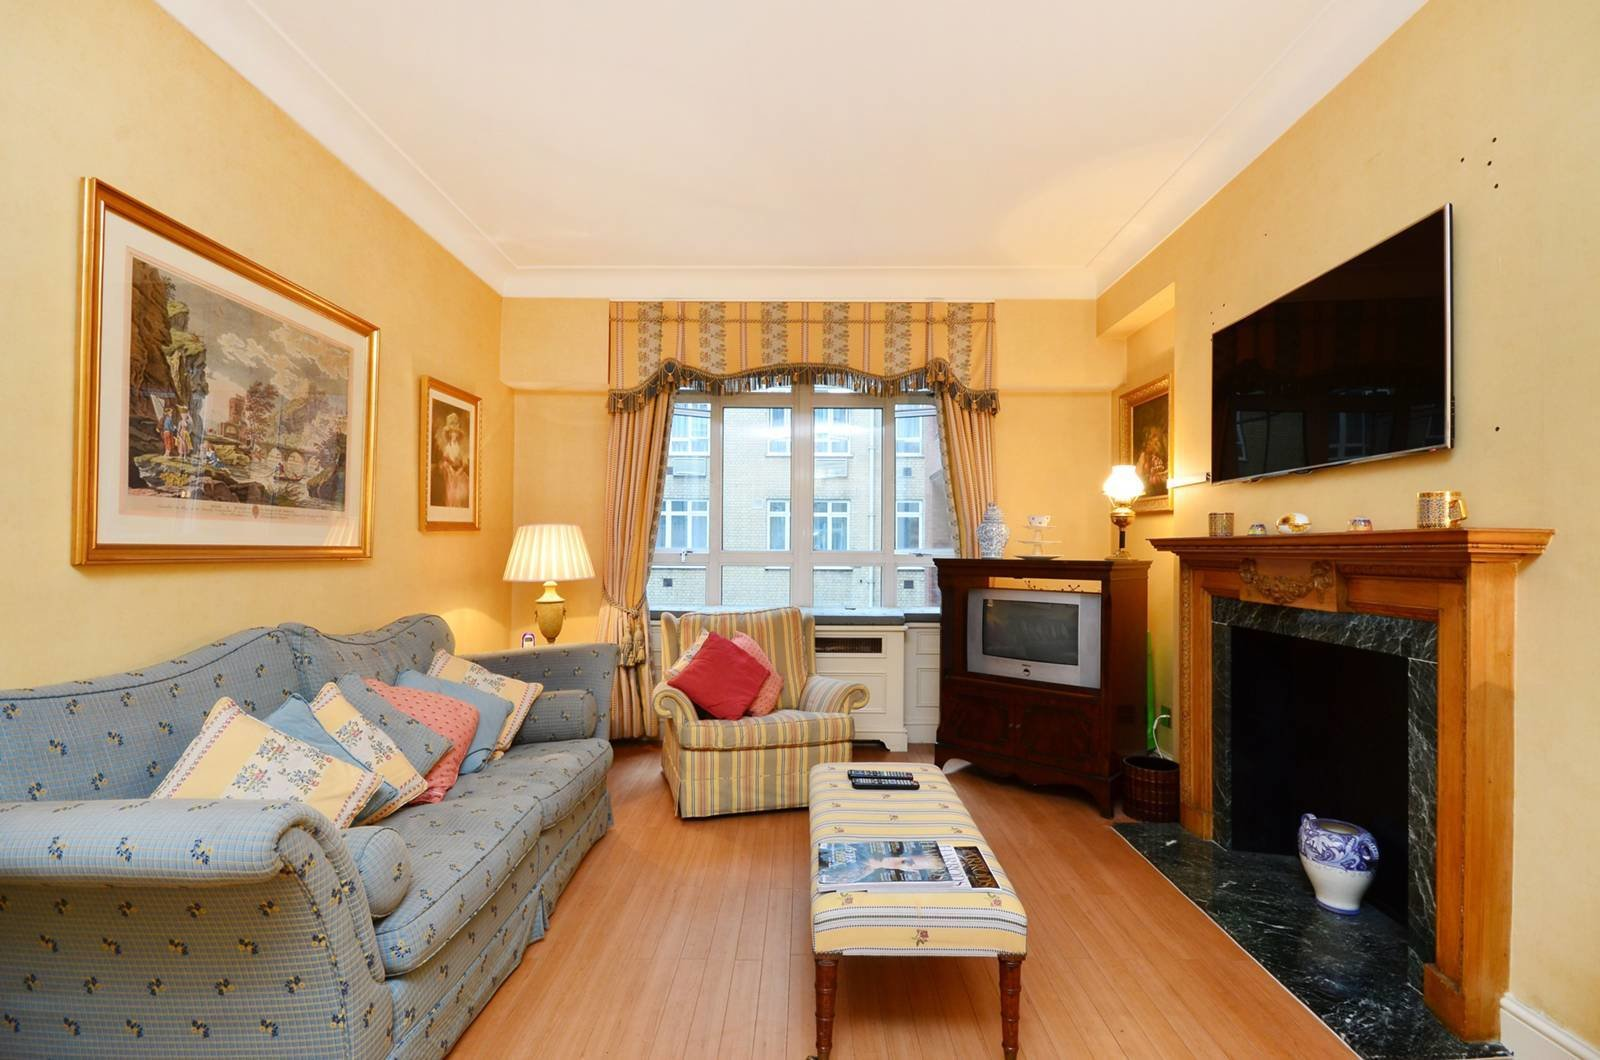 Best 1 Bedroom Flat For Sale In Park Lane Mayfair W1K London With Pictures